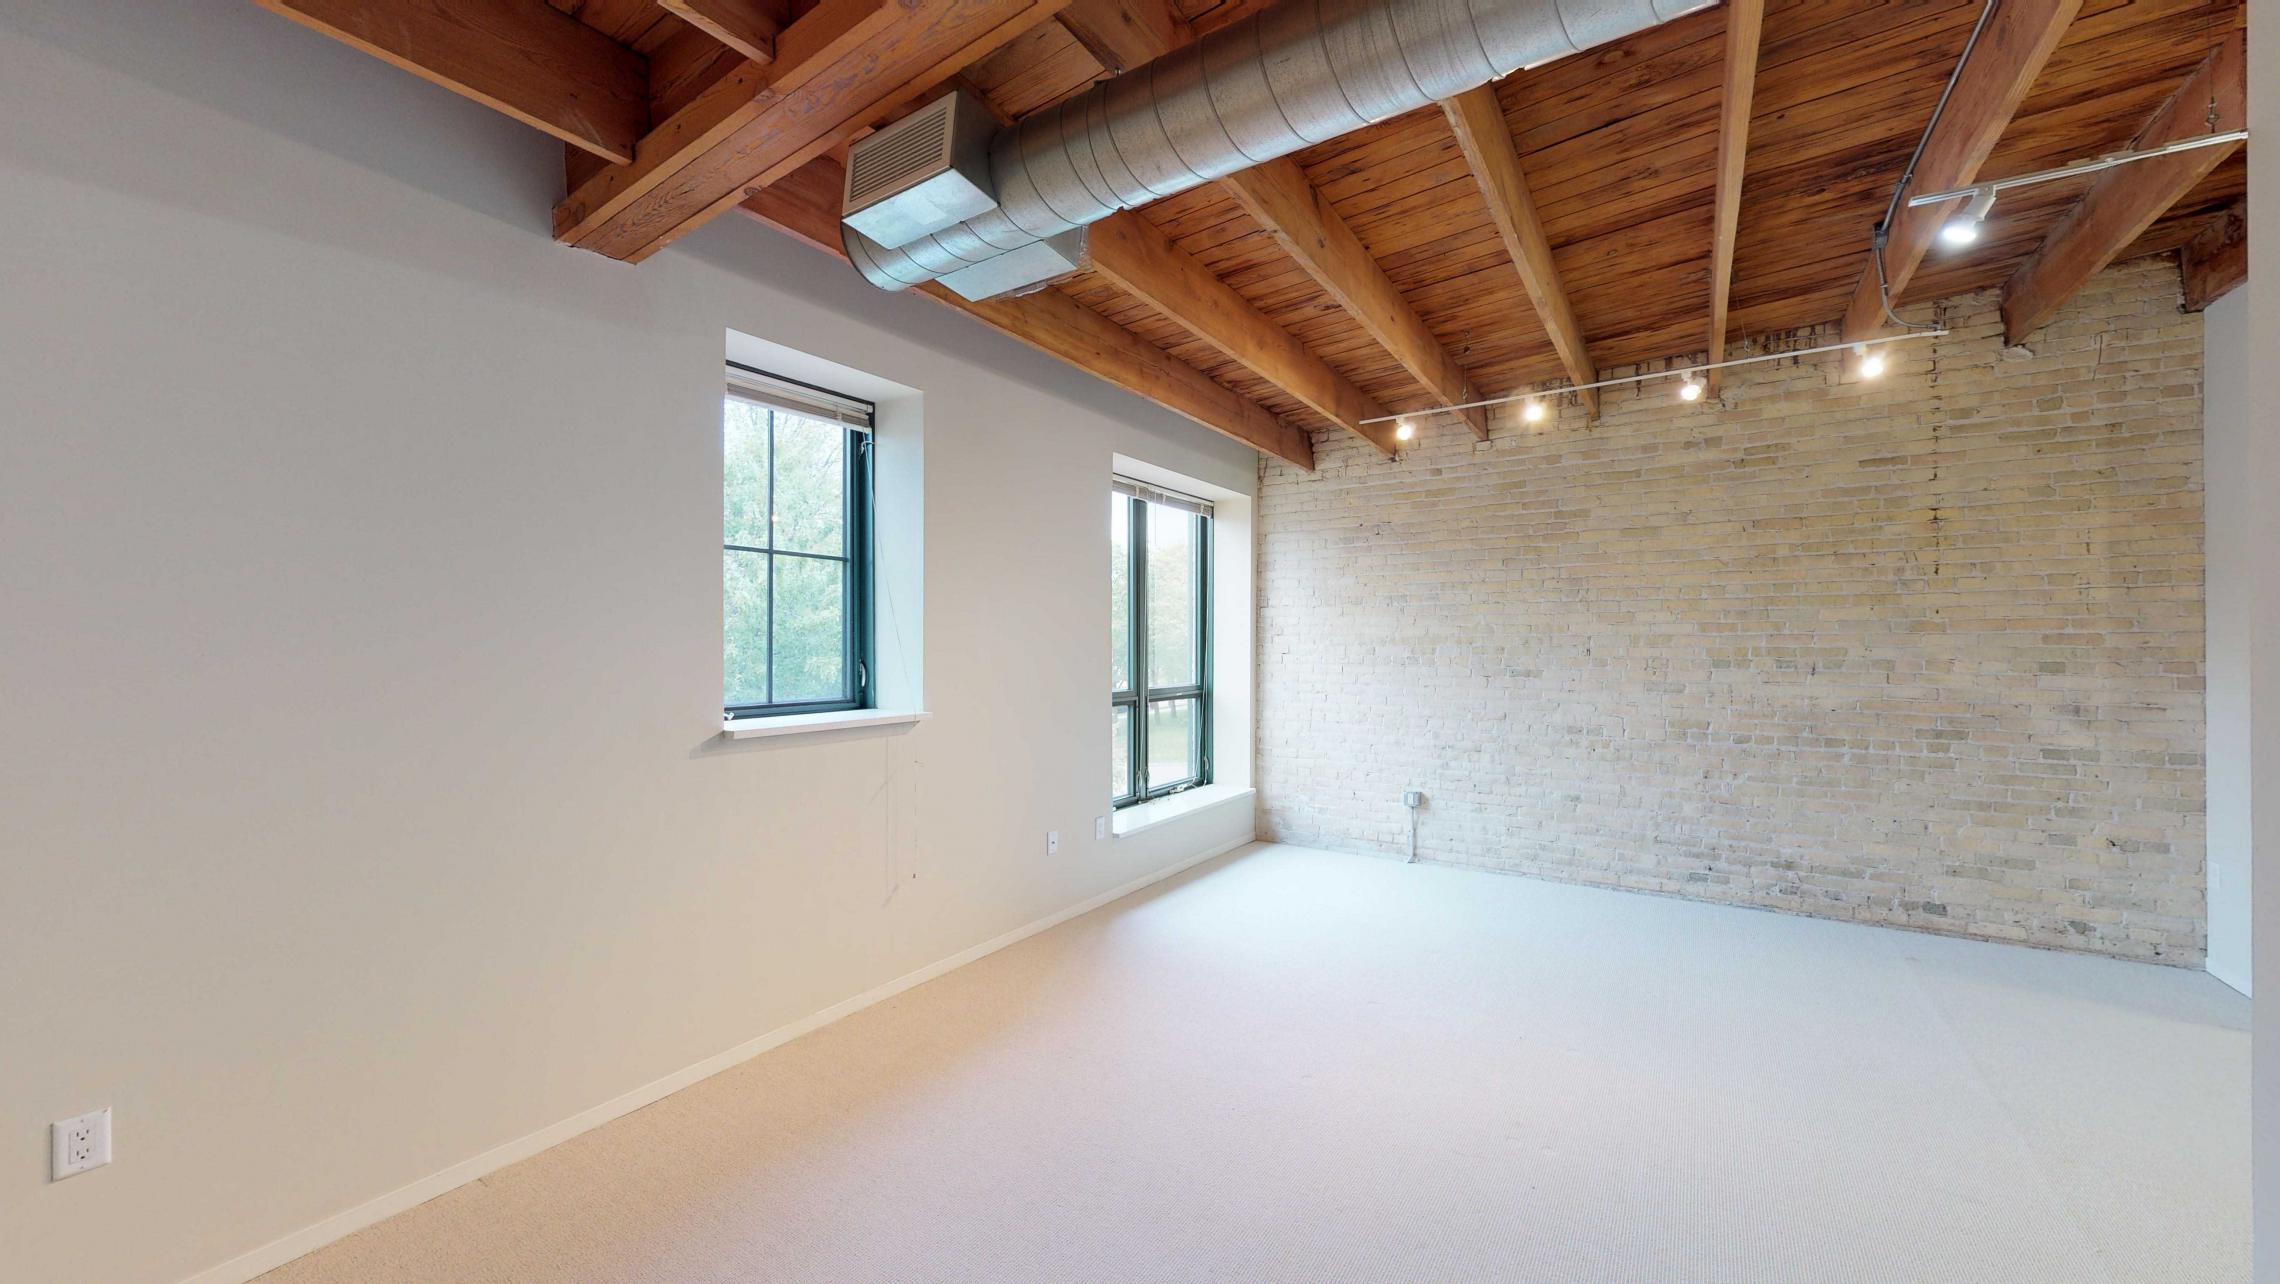 Tobacco-Lofts-Apartment-W220-Studio-Historic-Downtown-Madison-Yards-Kitchen-Exposures-Brick.jpg